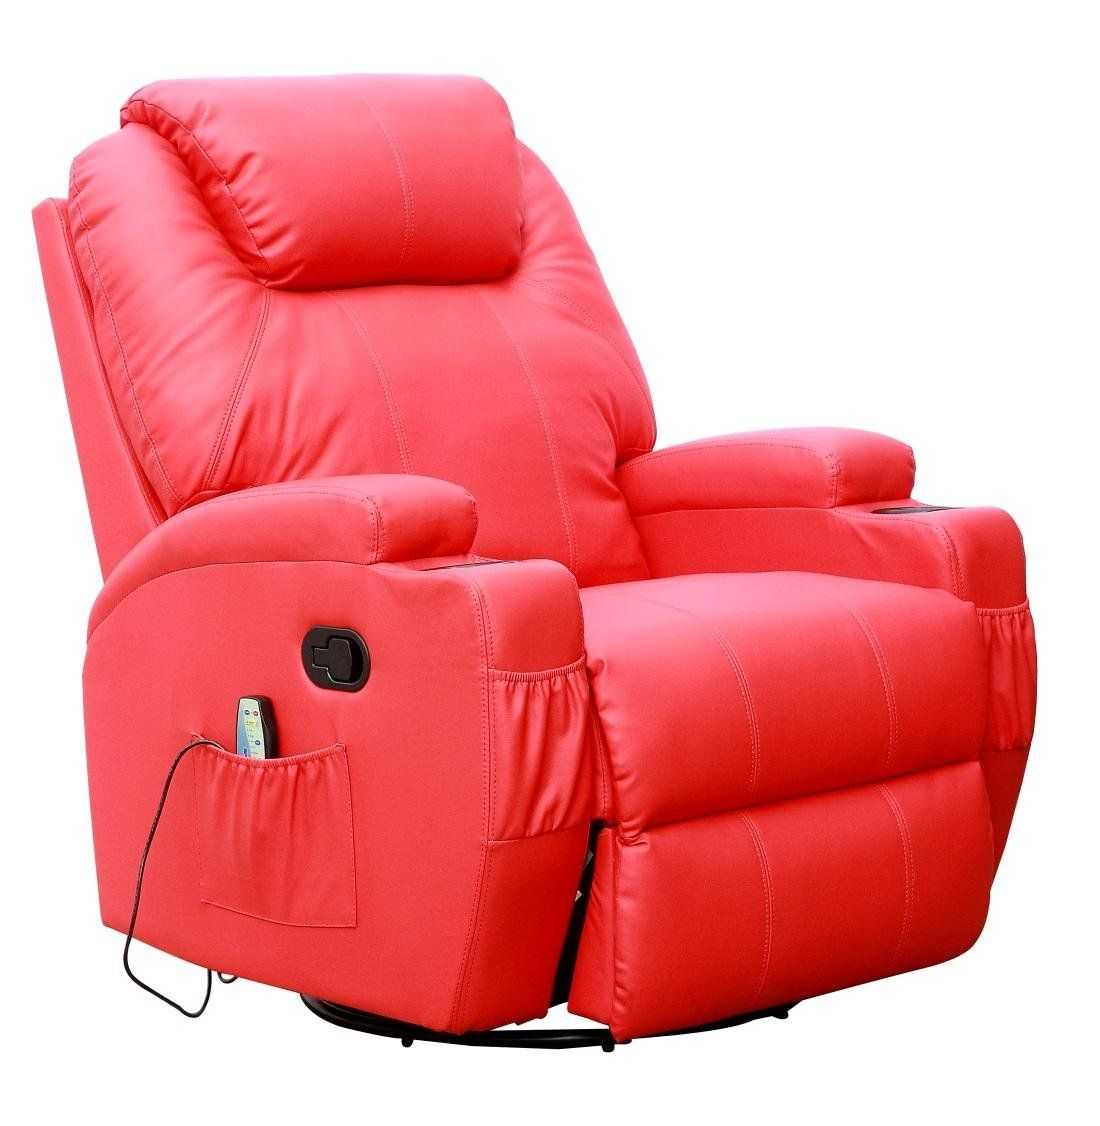 Remarkable Cinemo 9 In 1 Leather Recliner Chair Rocking Adjustable Evergreenethics Interior Chair Design Evergreenethicsorg